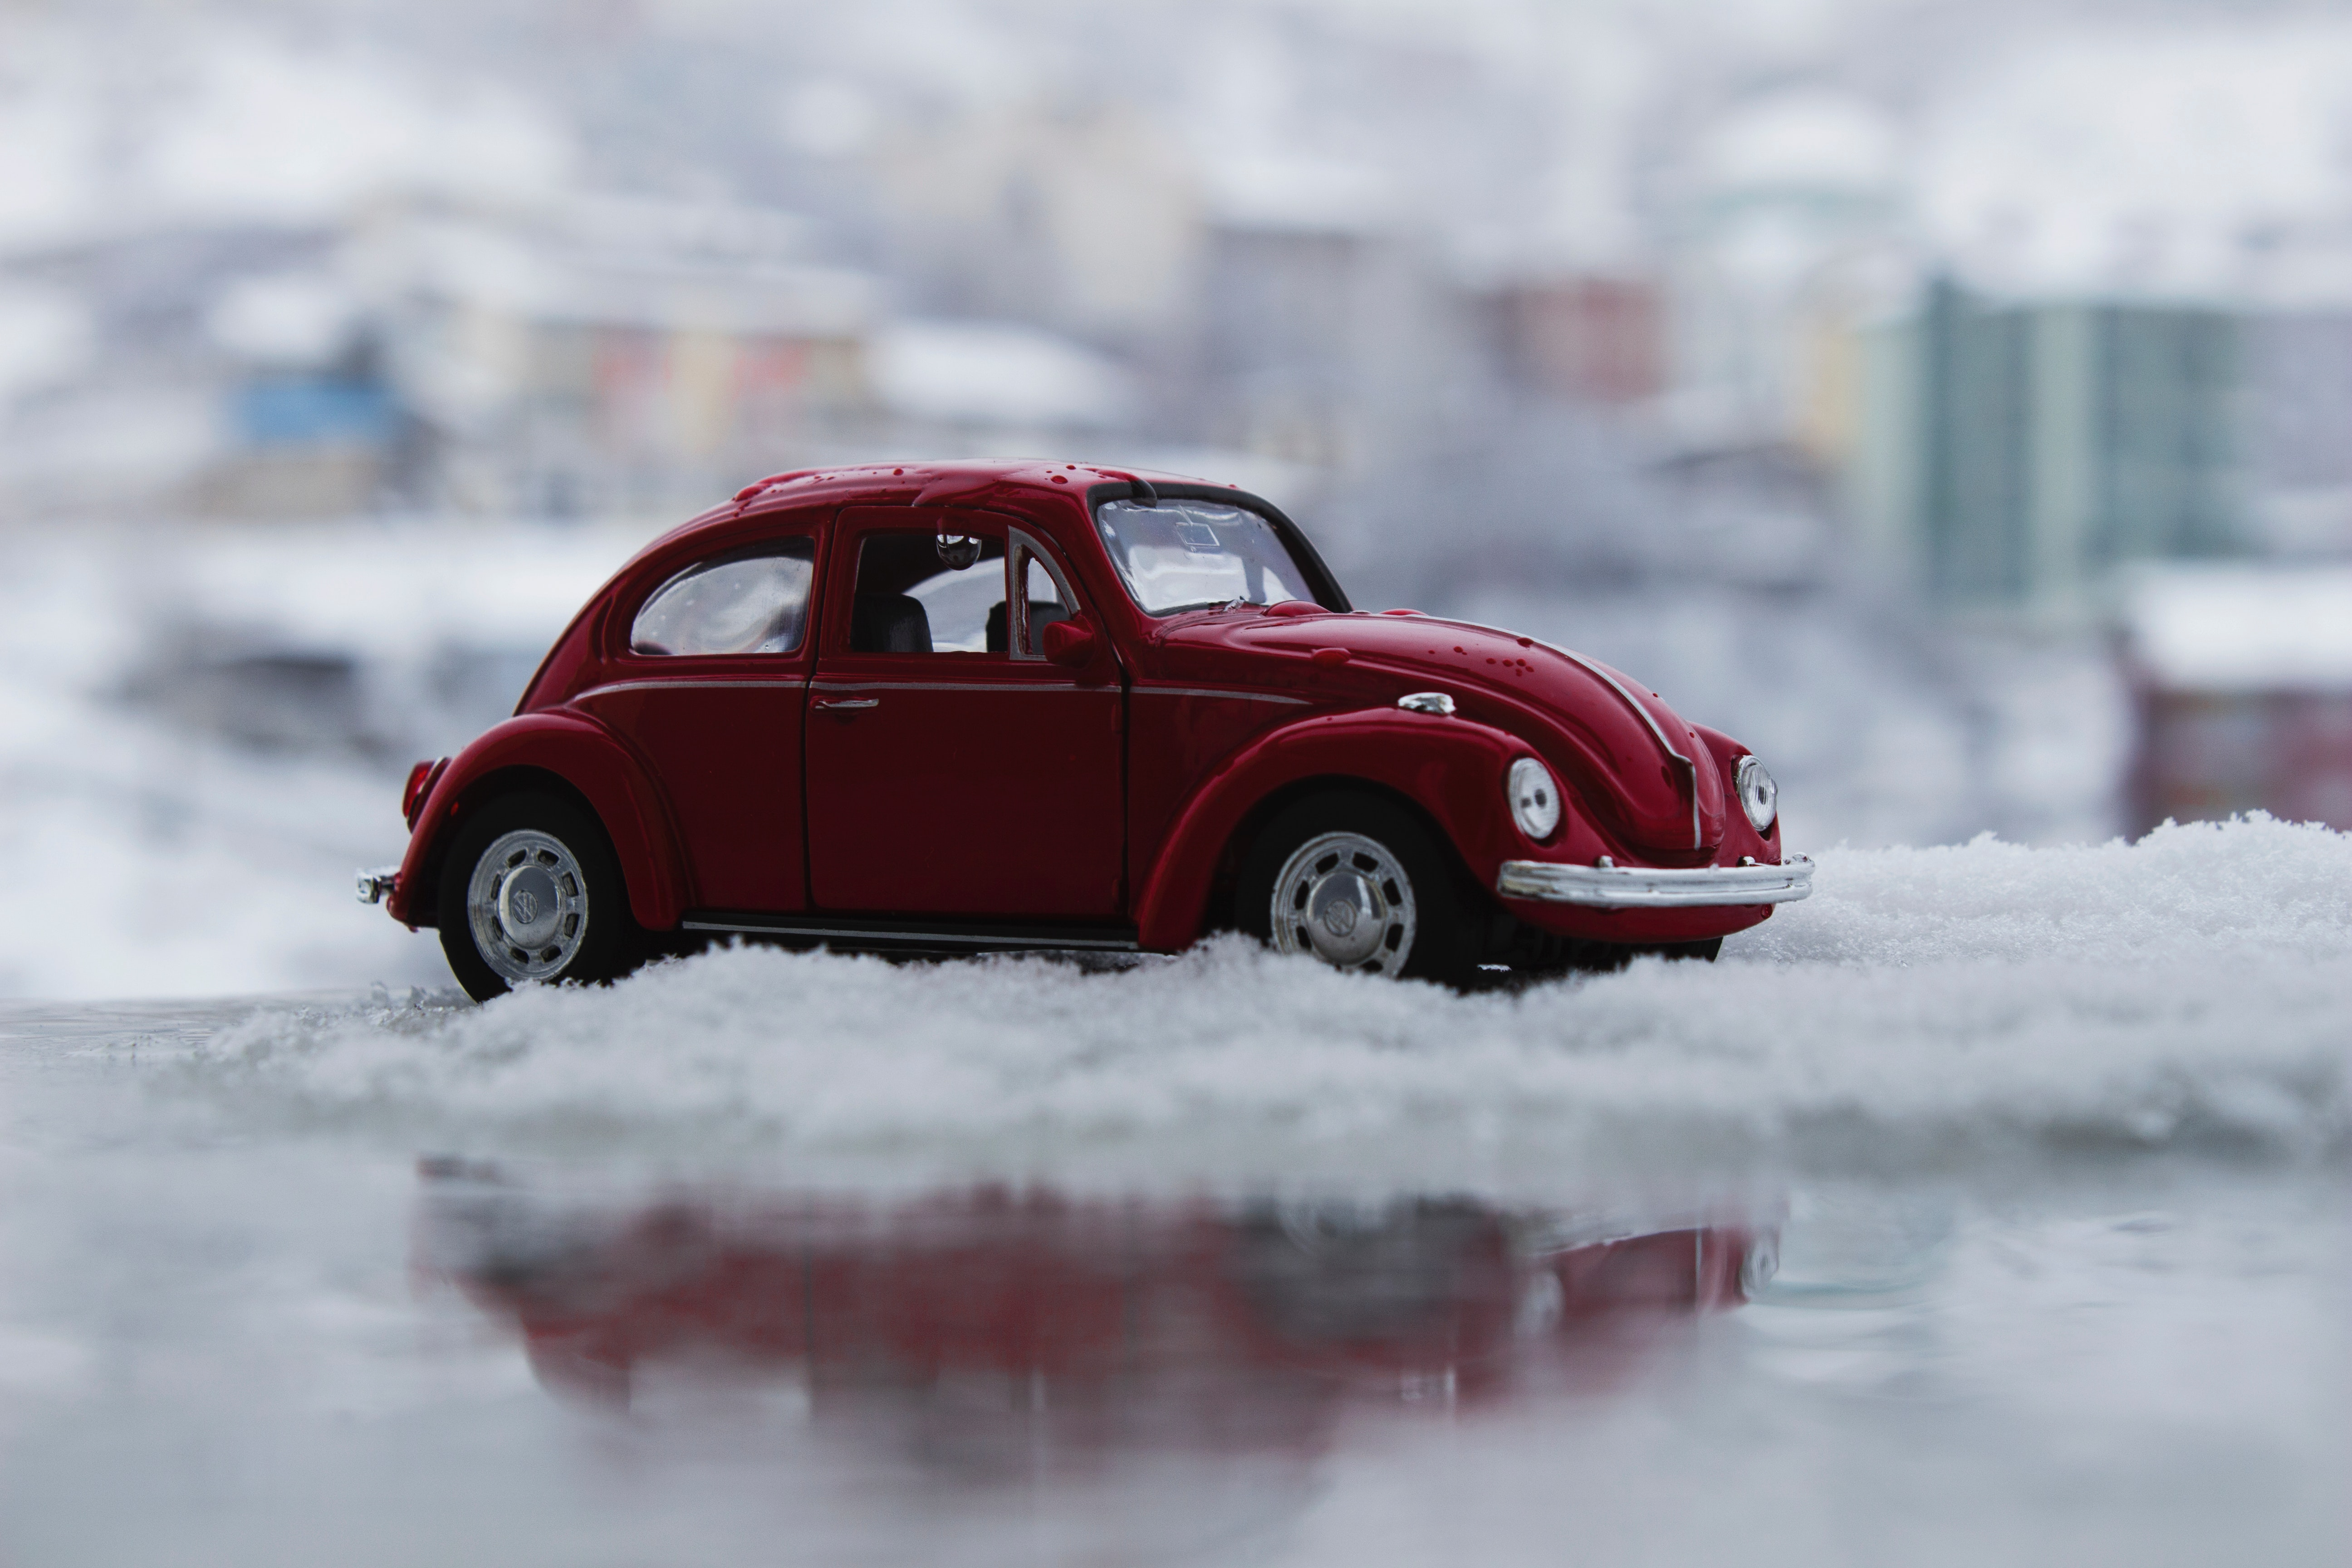 Red Toy Car in Snow, Action, Wheel, Vw beetle, Vw, HQ Photo